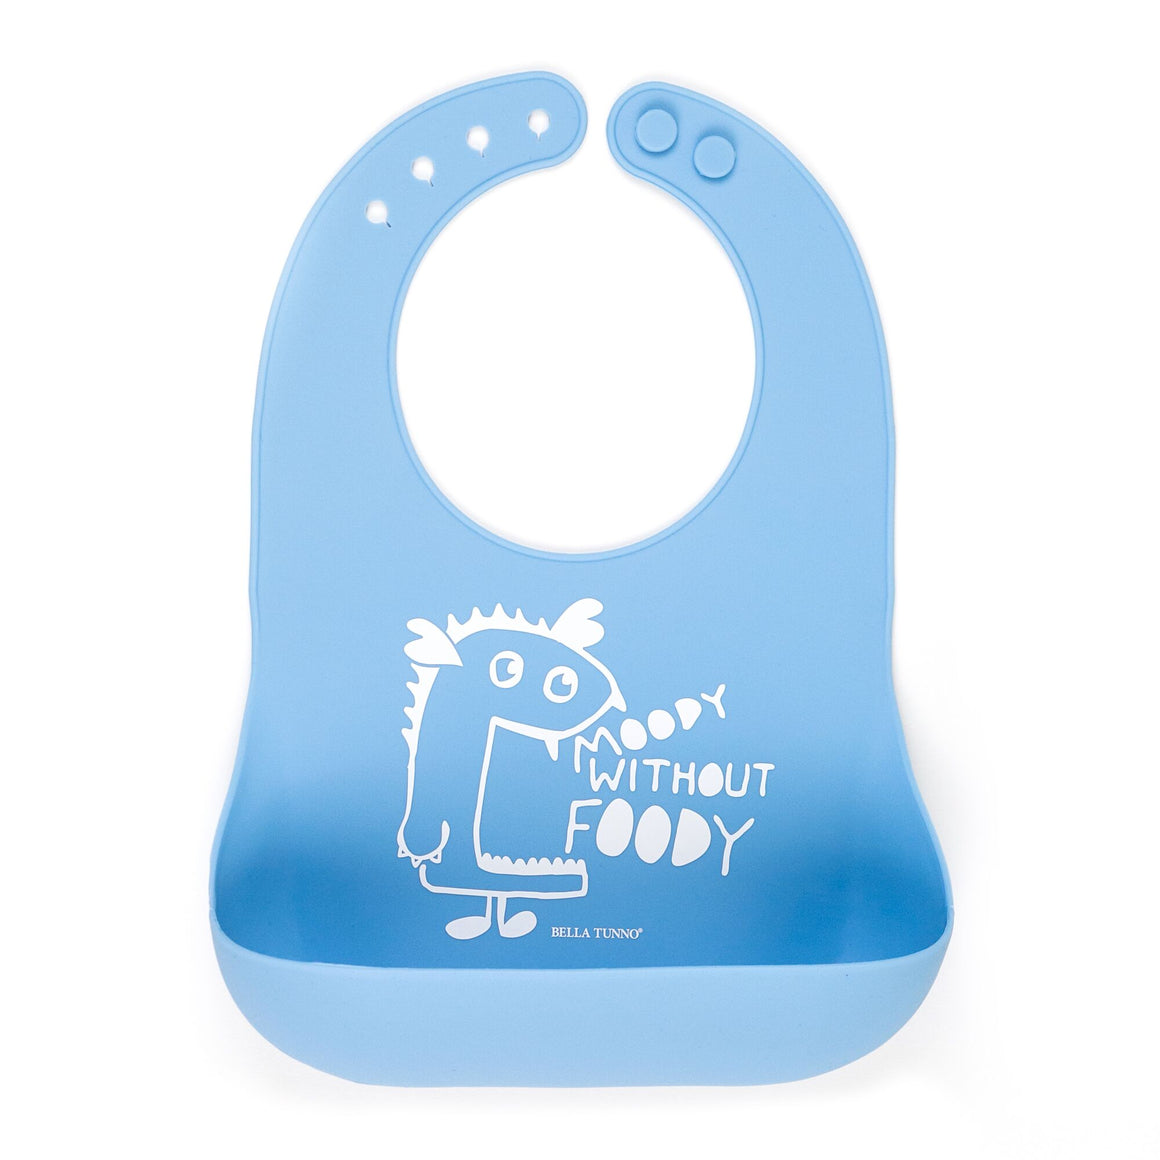 100% FDA Approved Food Grade Silicone Wonder Baby Bib with Monster Moody without Foody graphic in sky blue